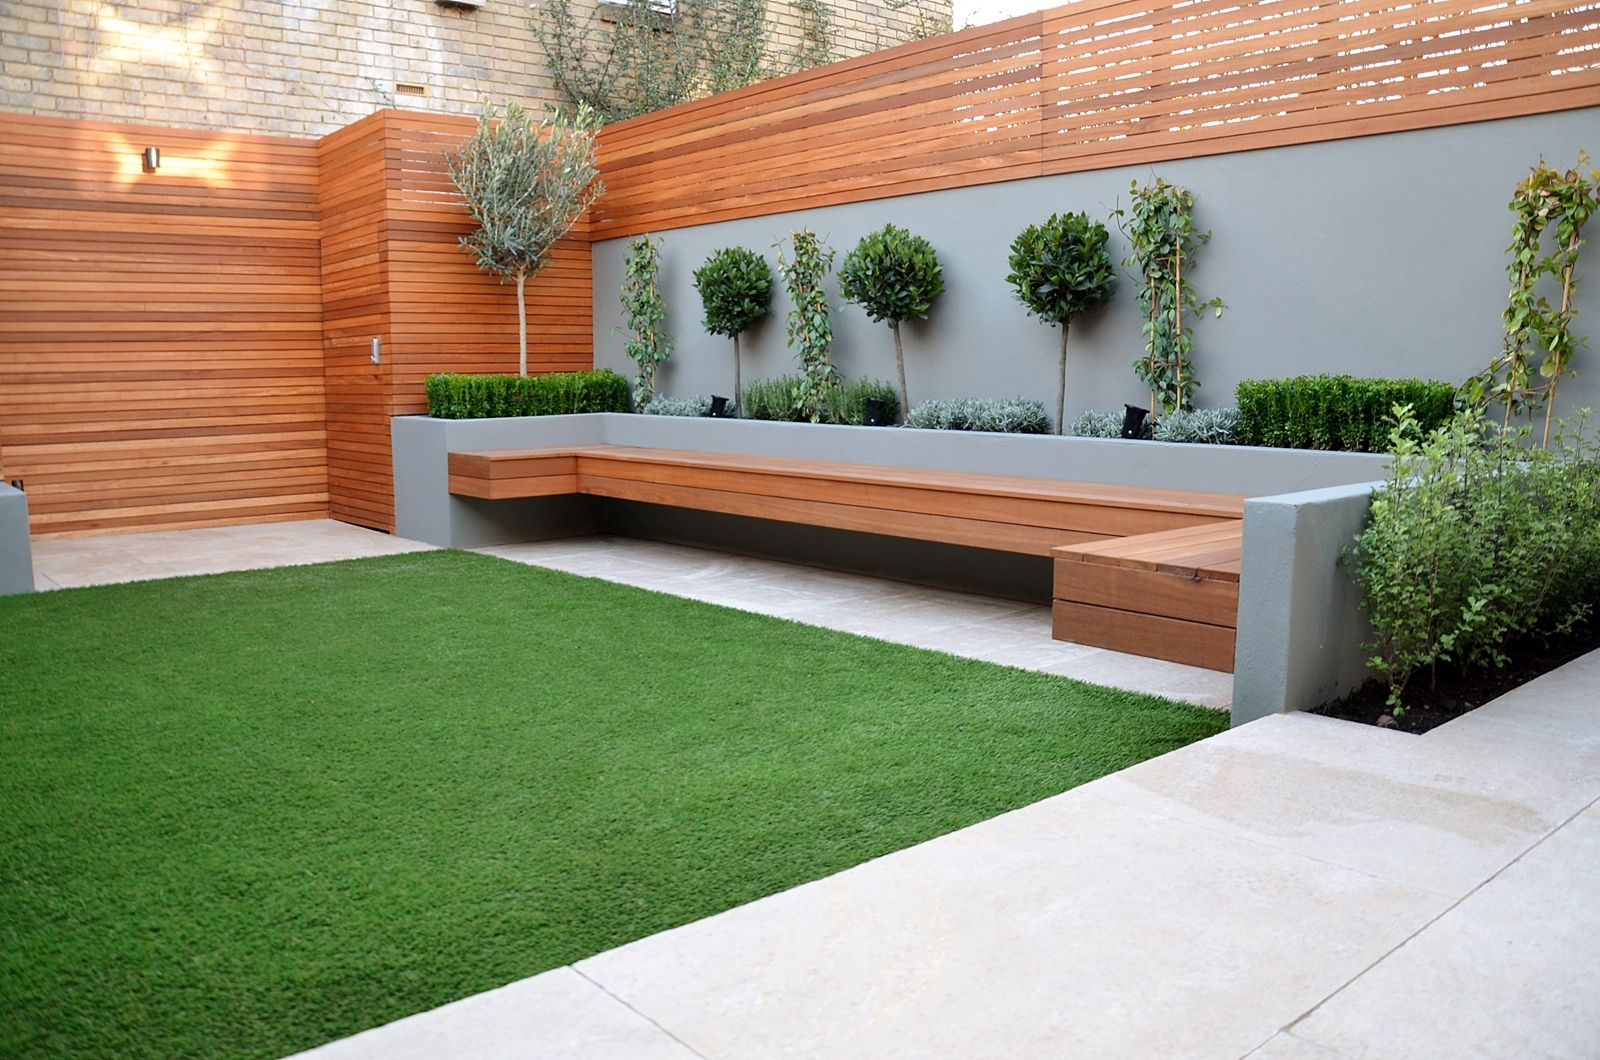 Ideas For Low Maintenance Garden family garden and landscaping low maintenance family lawn landscaping Modern Low Maintenance Garden Design Clapham London Designed By Anewgarden Home Ideas Pinterest Gardens Design And House